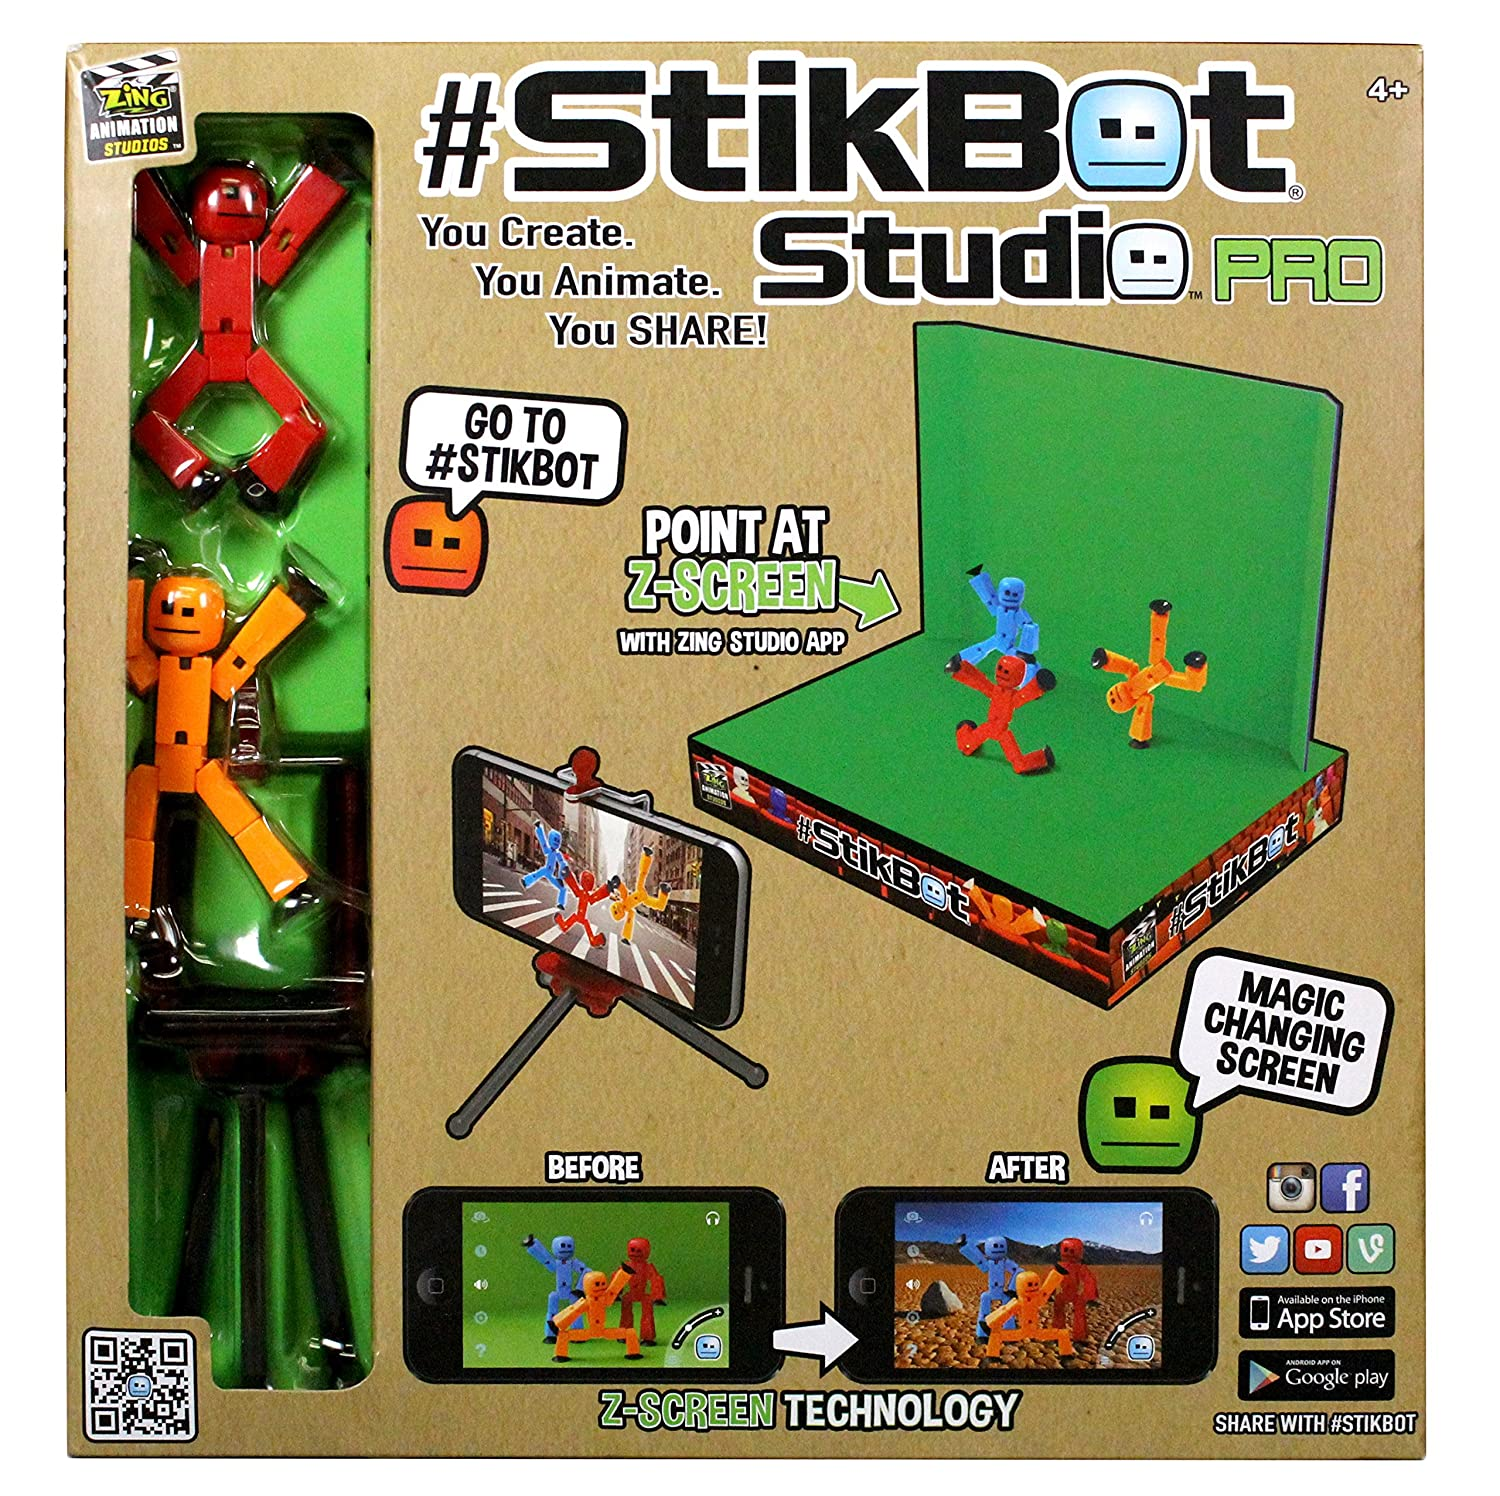 You can buy the Zing Stikbot Studio Pro Toy Figure here